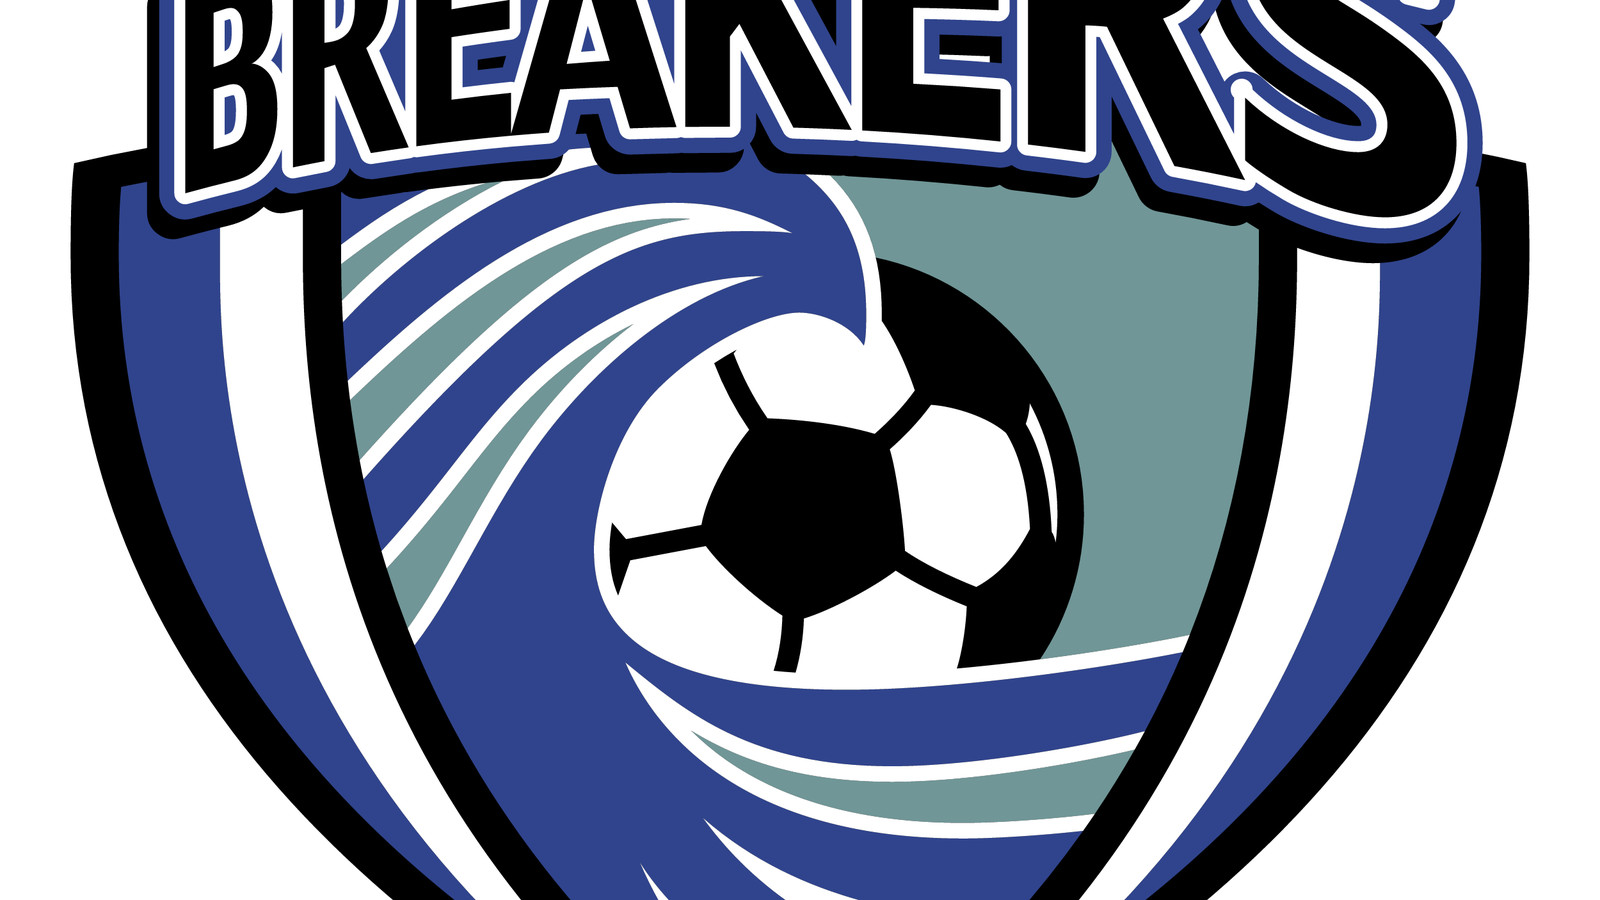 Vancouver_breakers.0